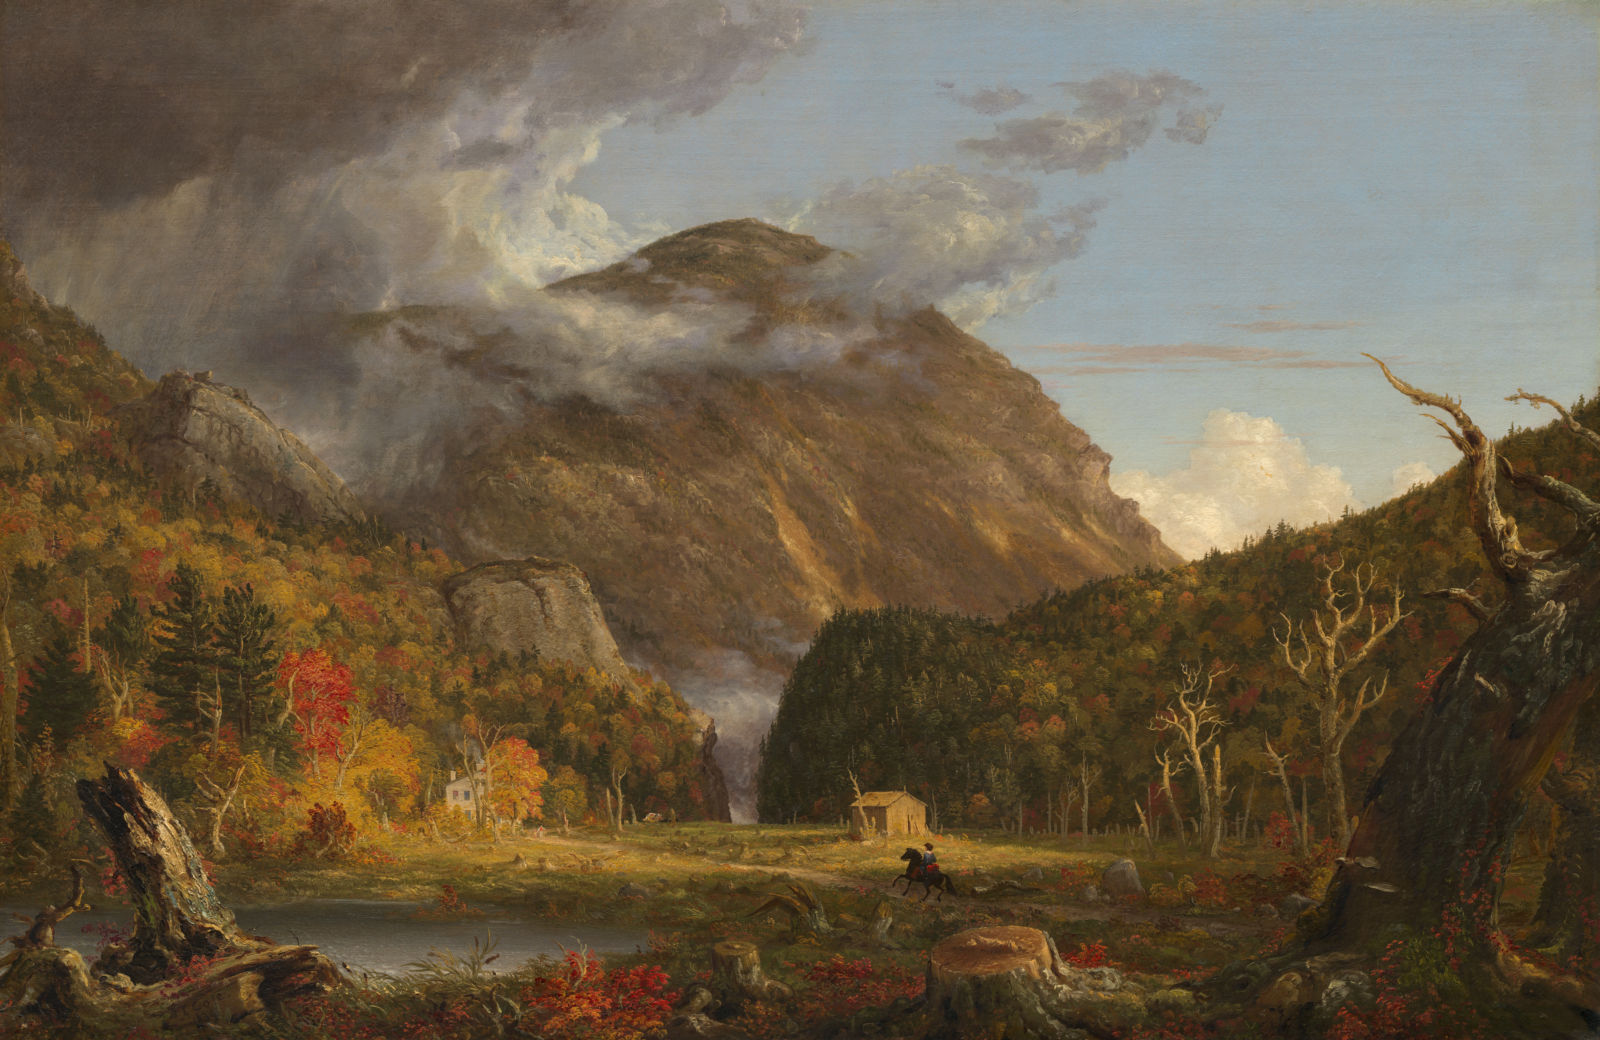 Nature's Nation. How American art shaped our environmental perspectives